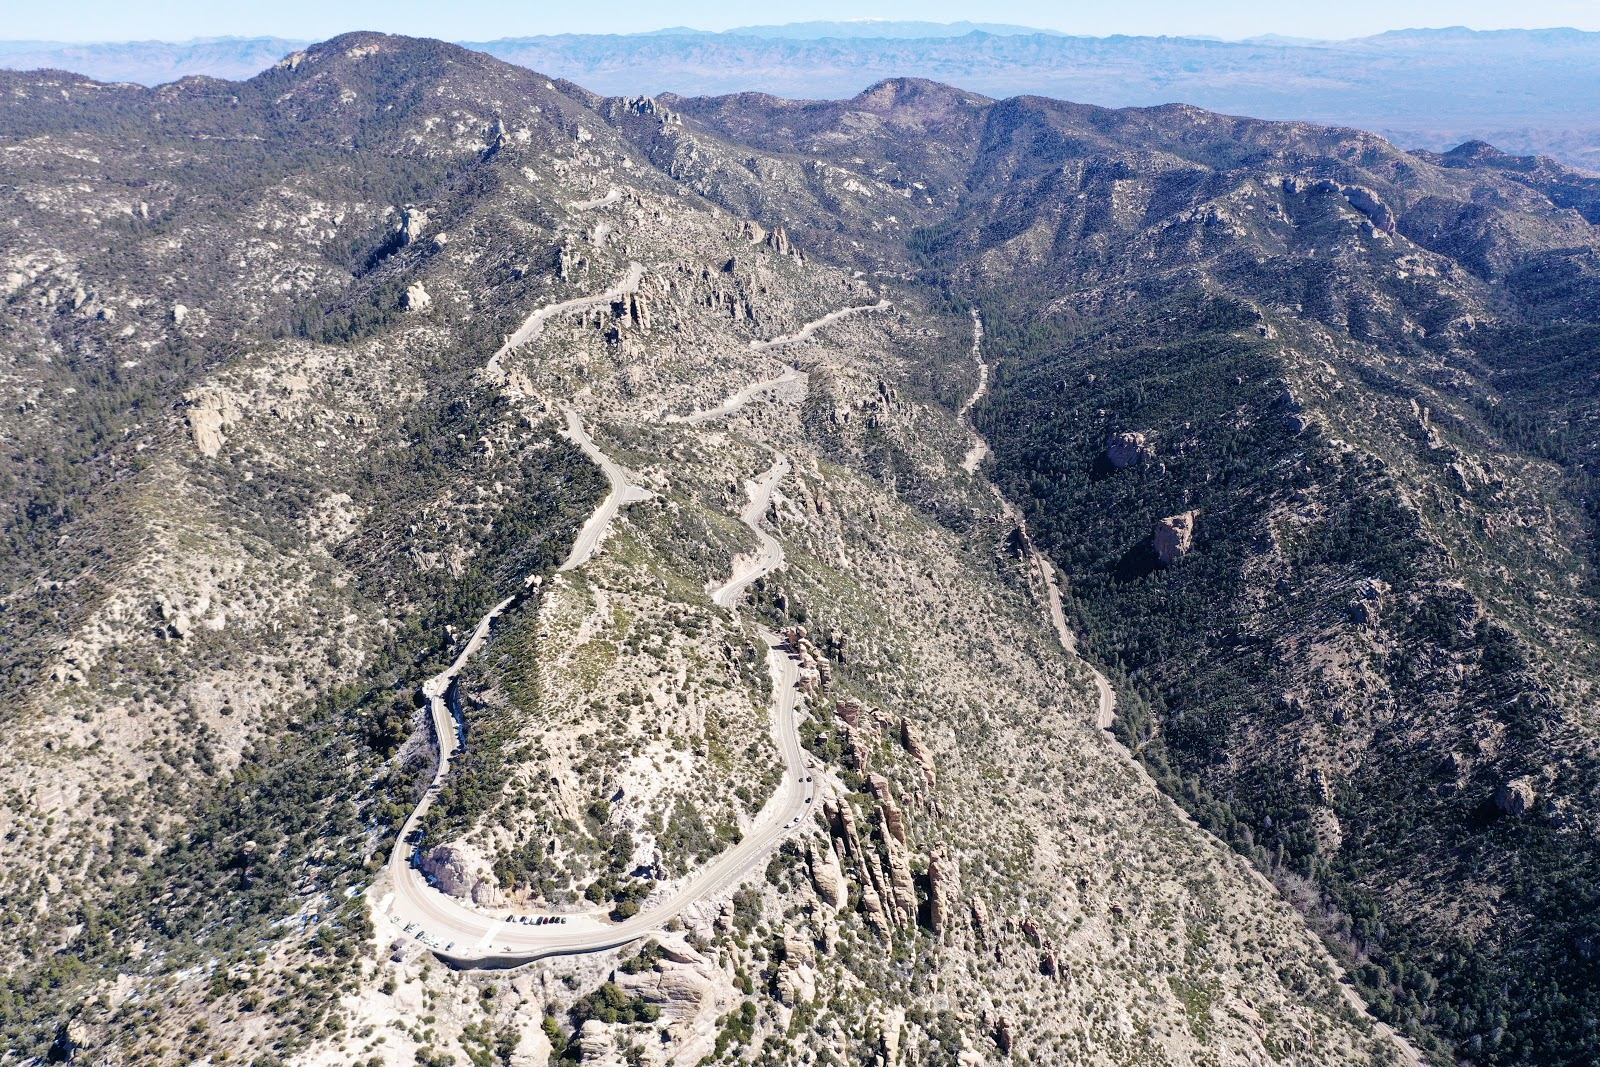 Cycling Mt. Lemmon - aerial drone photo of windy point